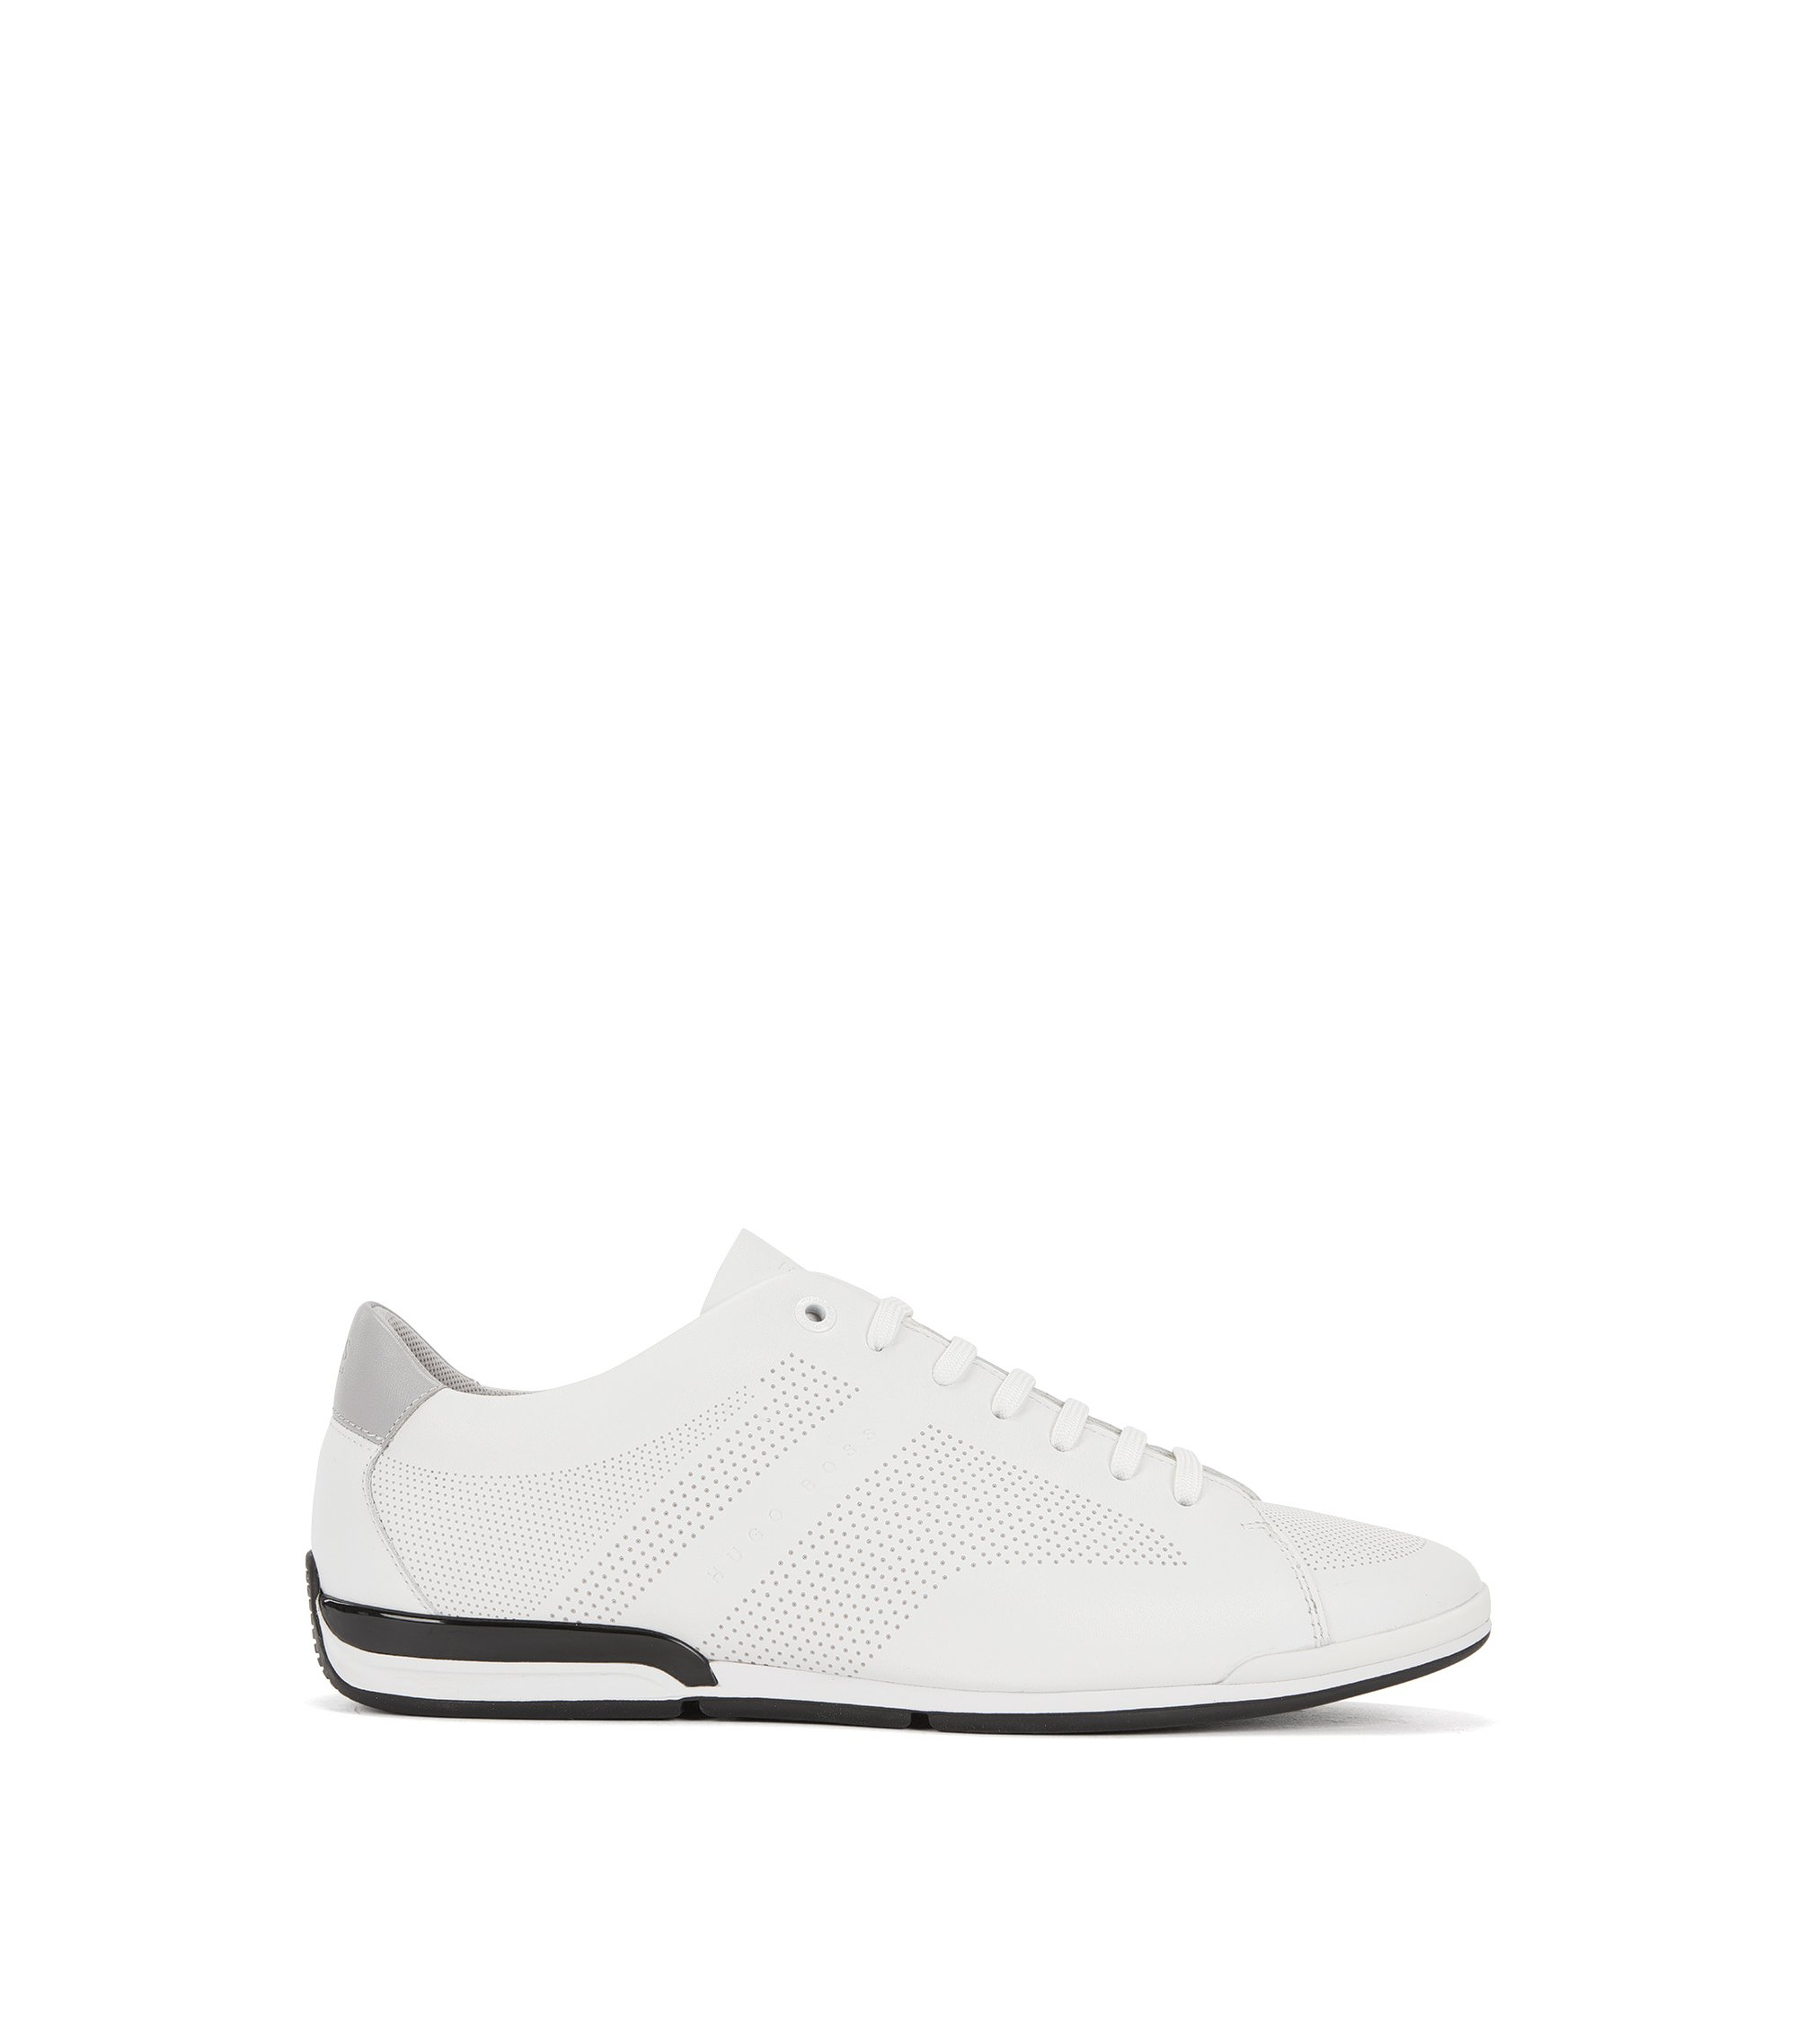 Low-top lace-up trainers in nappa leather, White